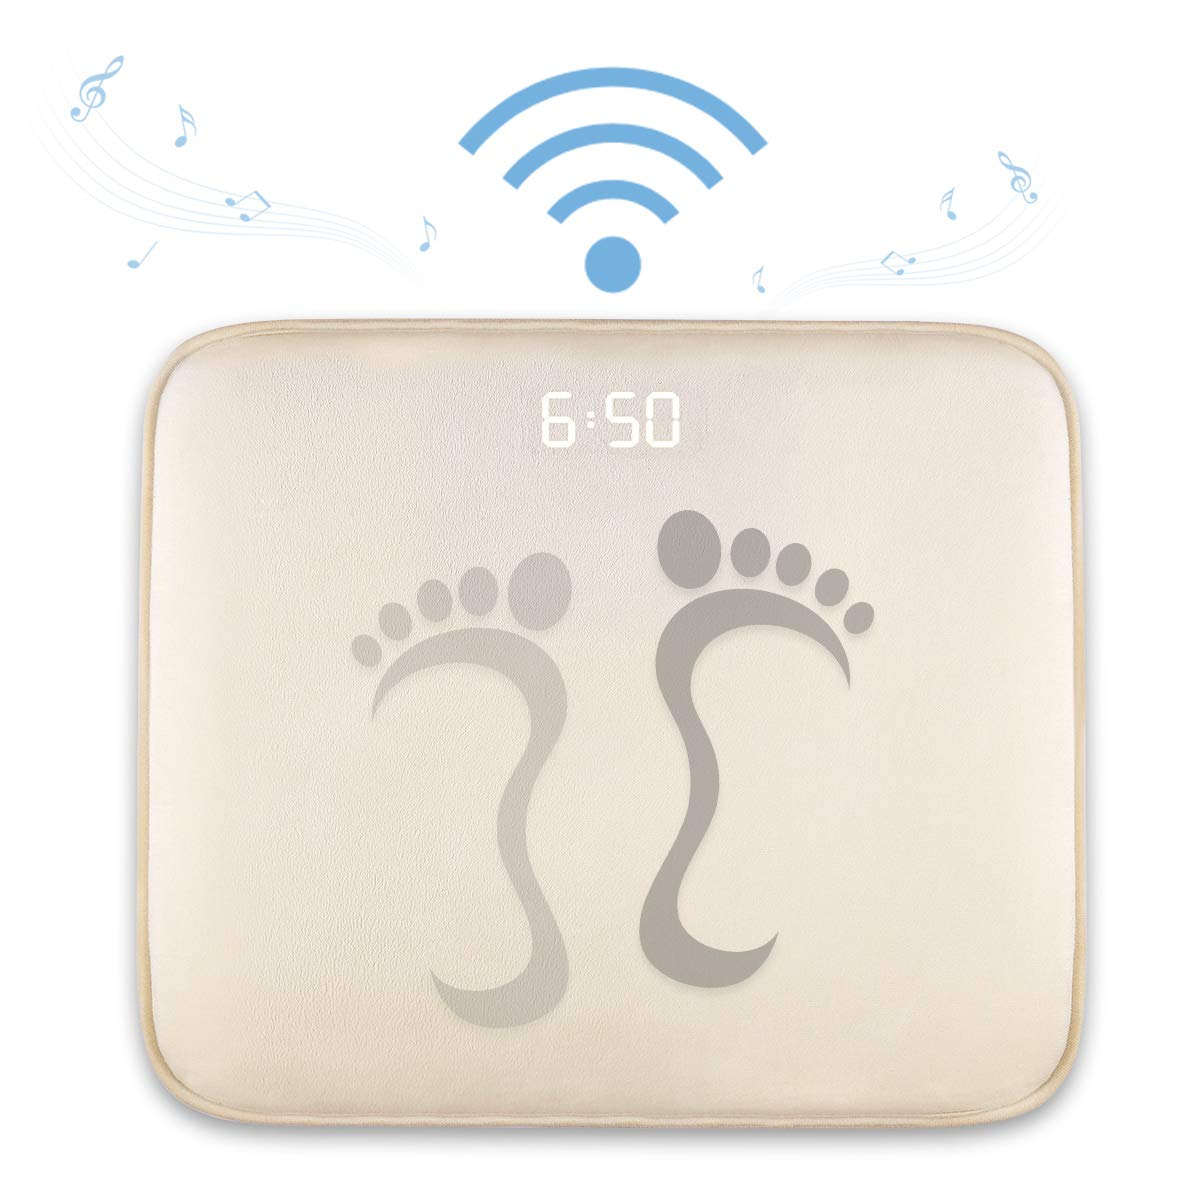 DLRB Alarm Clock for Heavy Sleepers,Instecho Rug Carpet Alarm Clock White-Old Digital Display,Pressure Sensitive Alarm Clock with The Softest Touch for Modern Home JaneSame